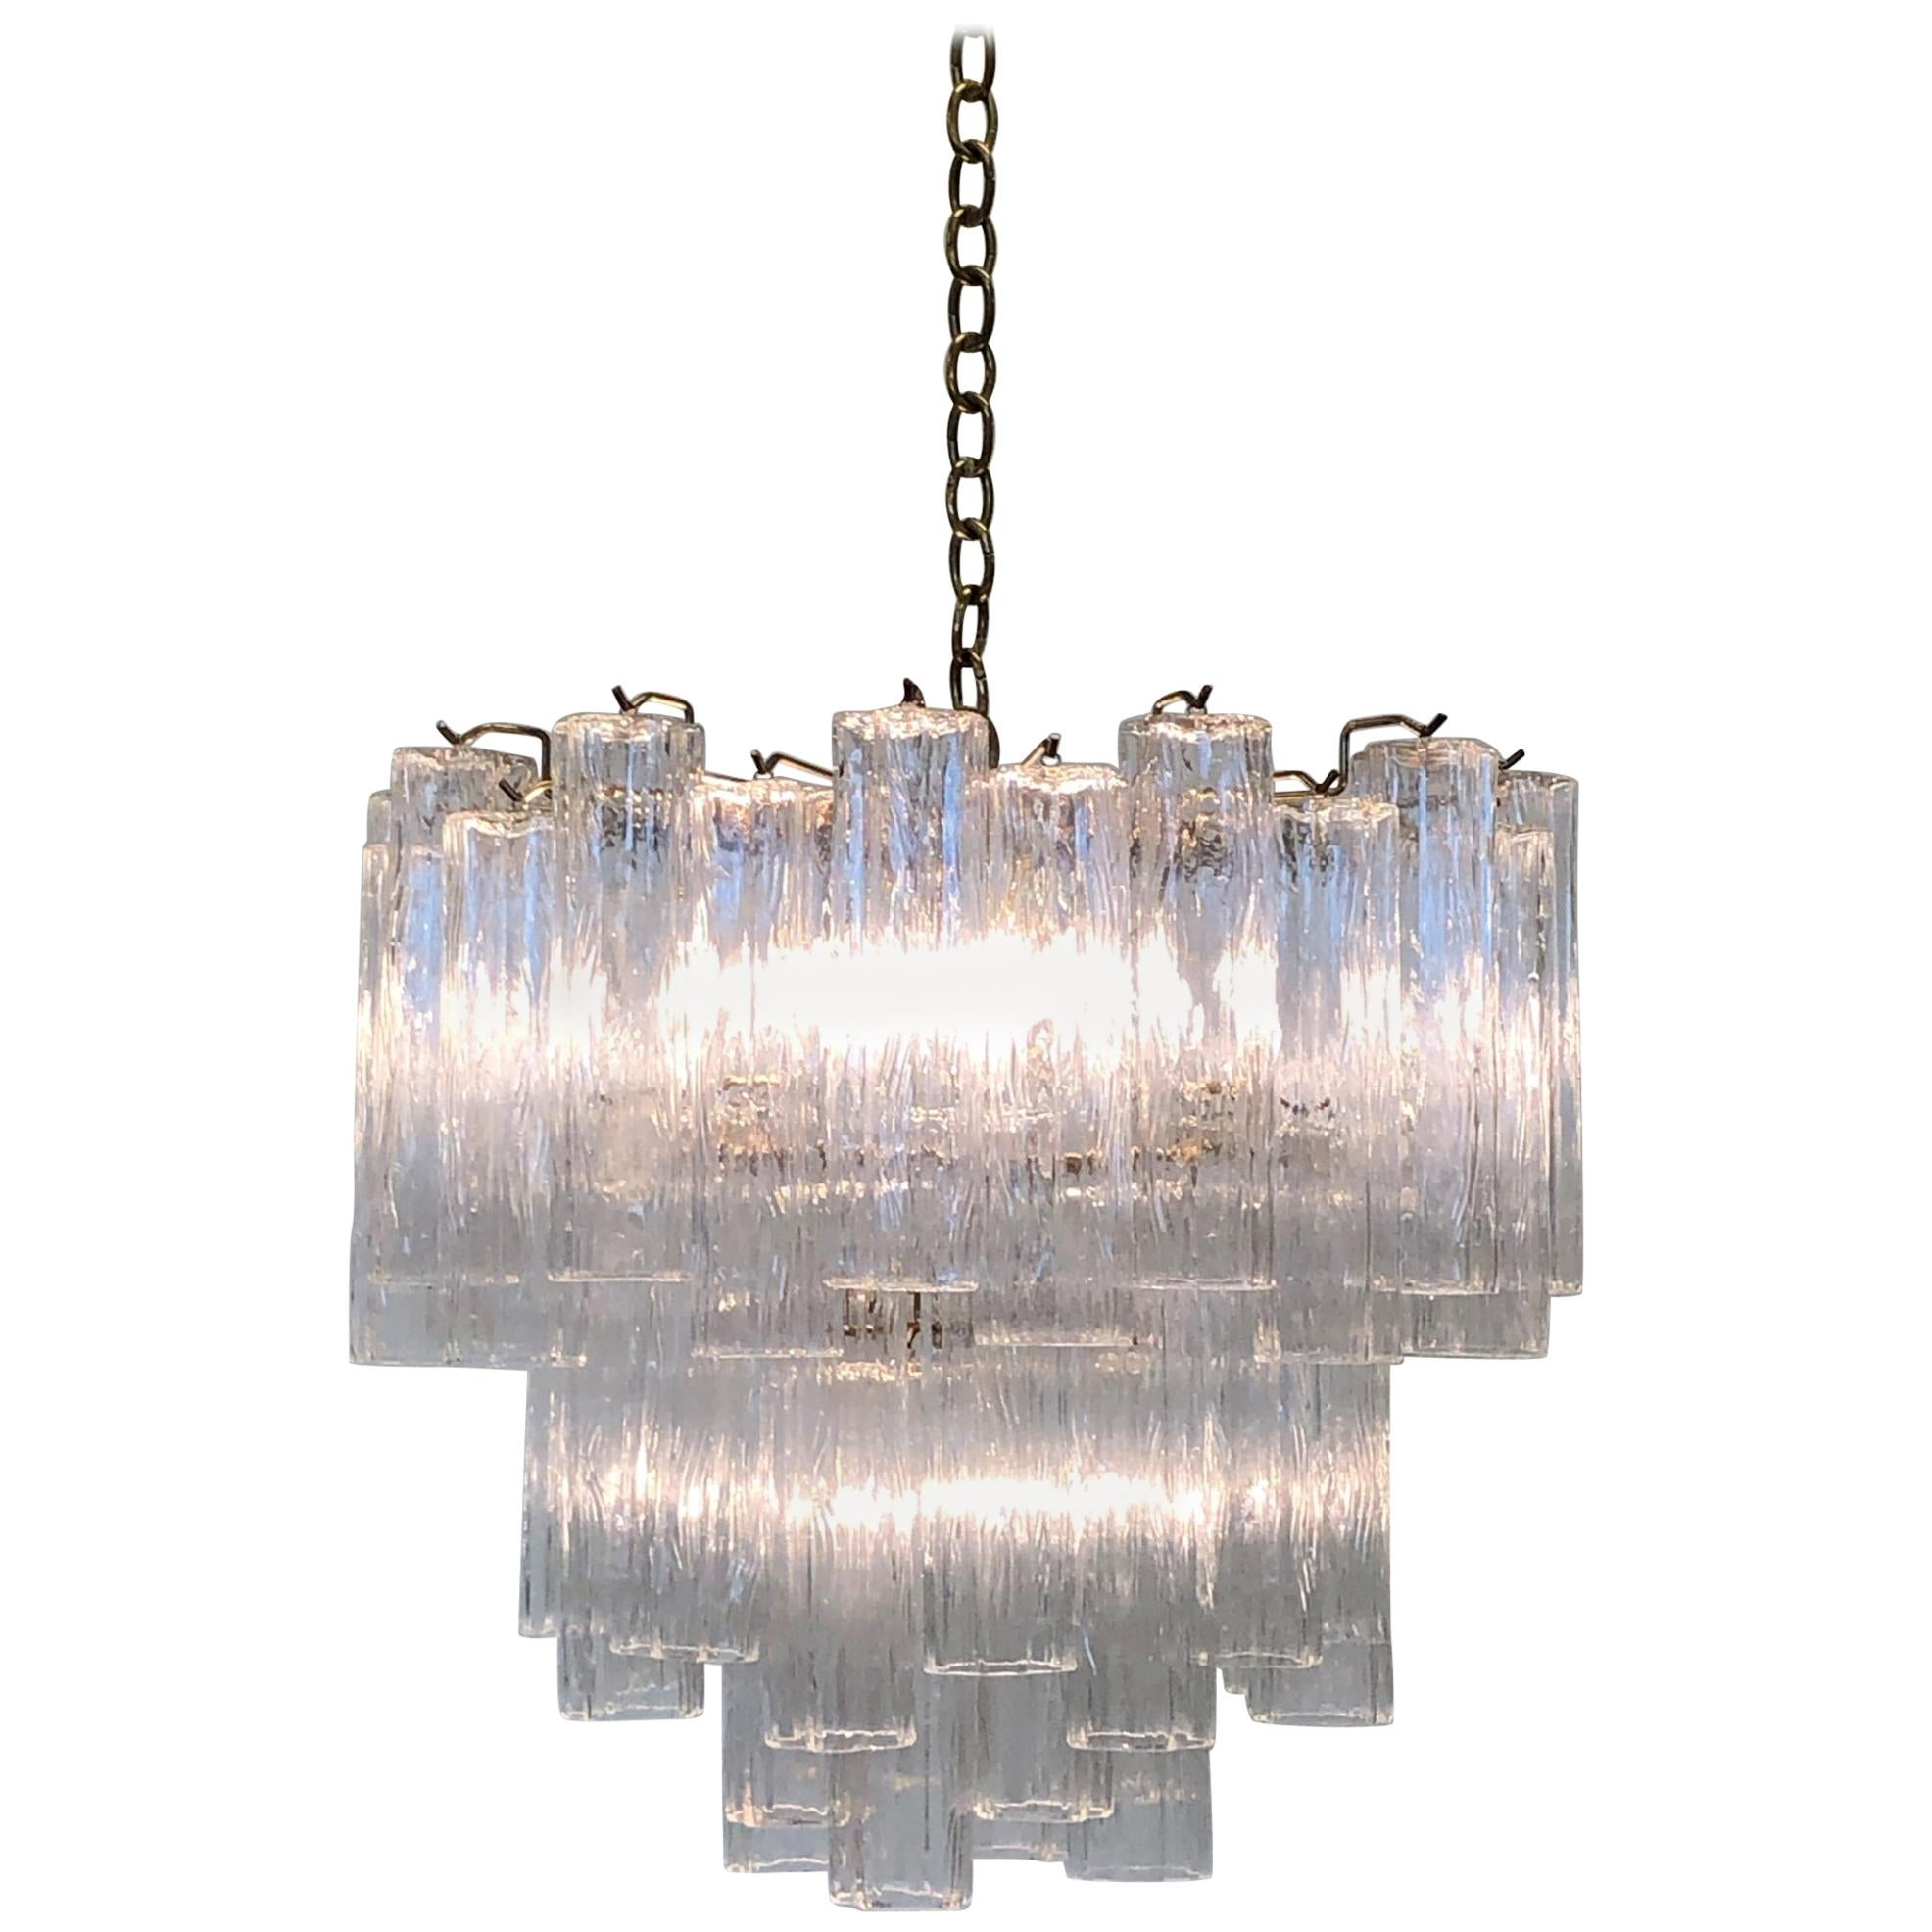 Italian Murano Glass and Brass Chandelier by Venini